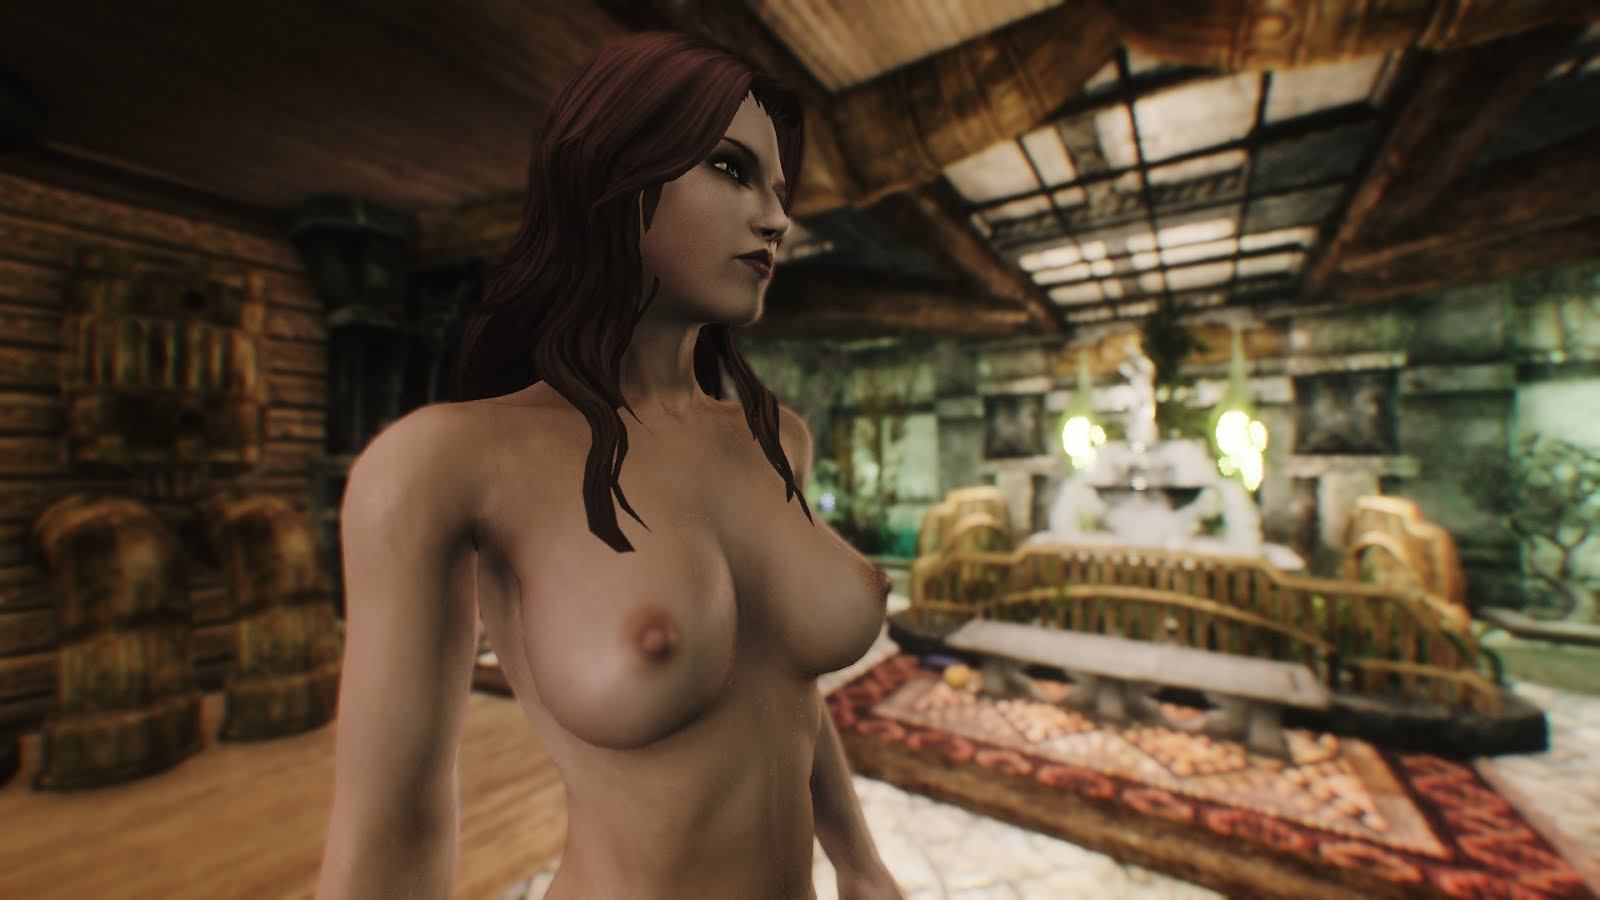 Hd video nude for pc download nsfw image